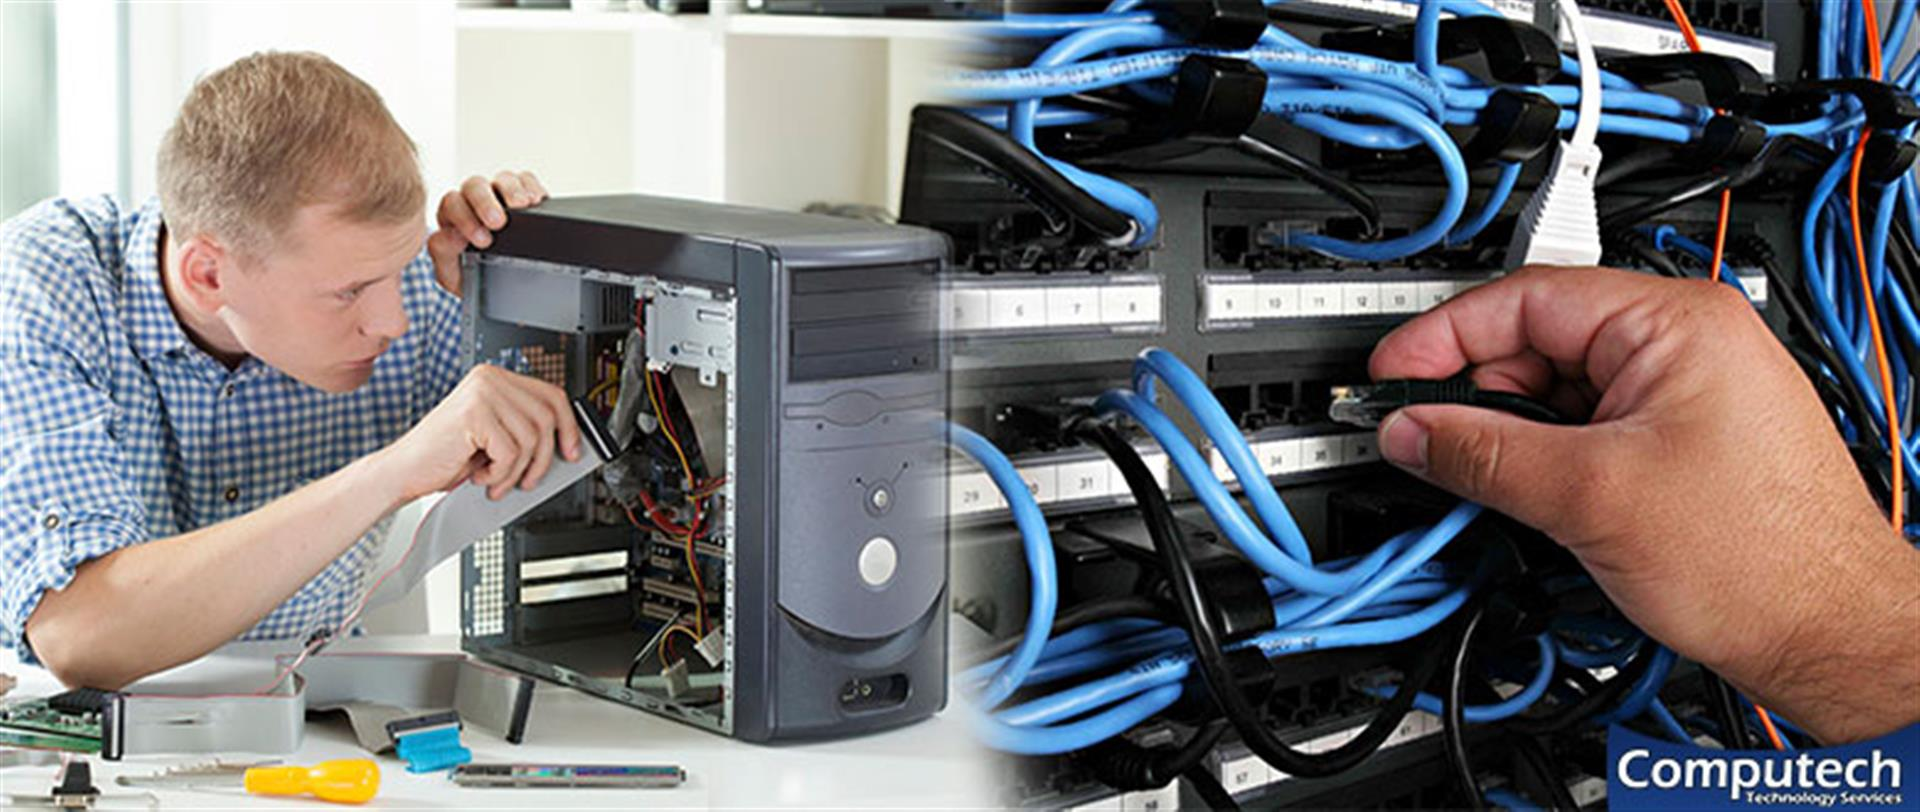 Madison Alabama Onsite Computer & Printer Repair, Network, Telecom & Data Wiring Solutions